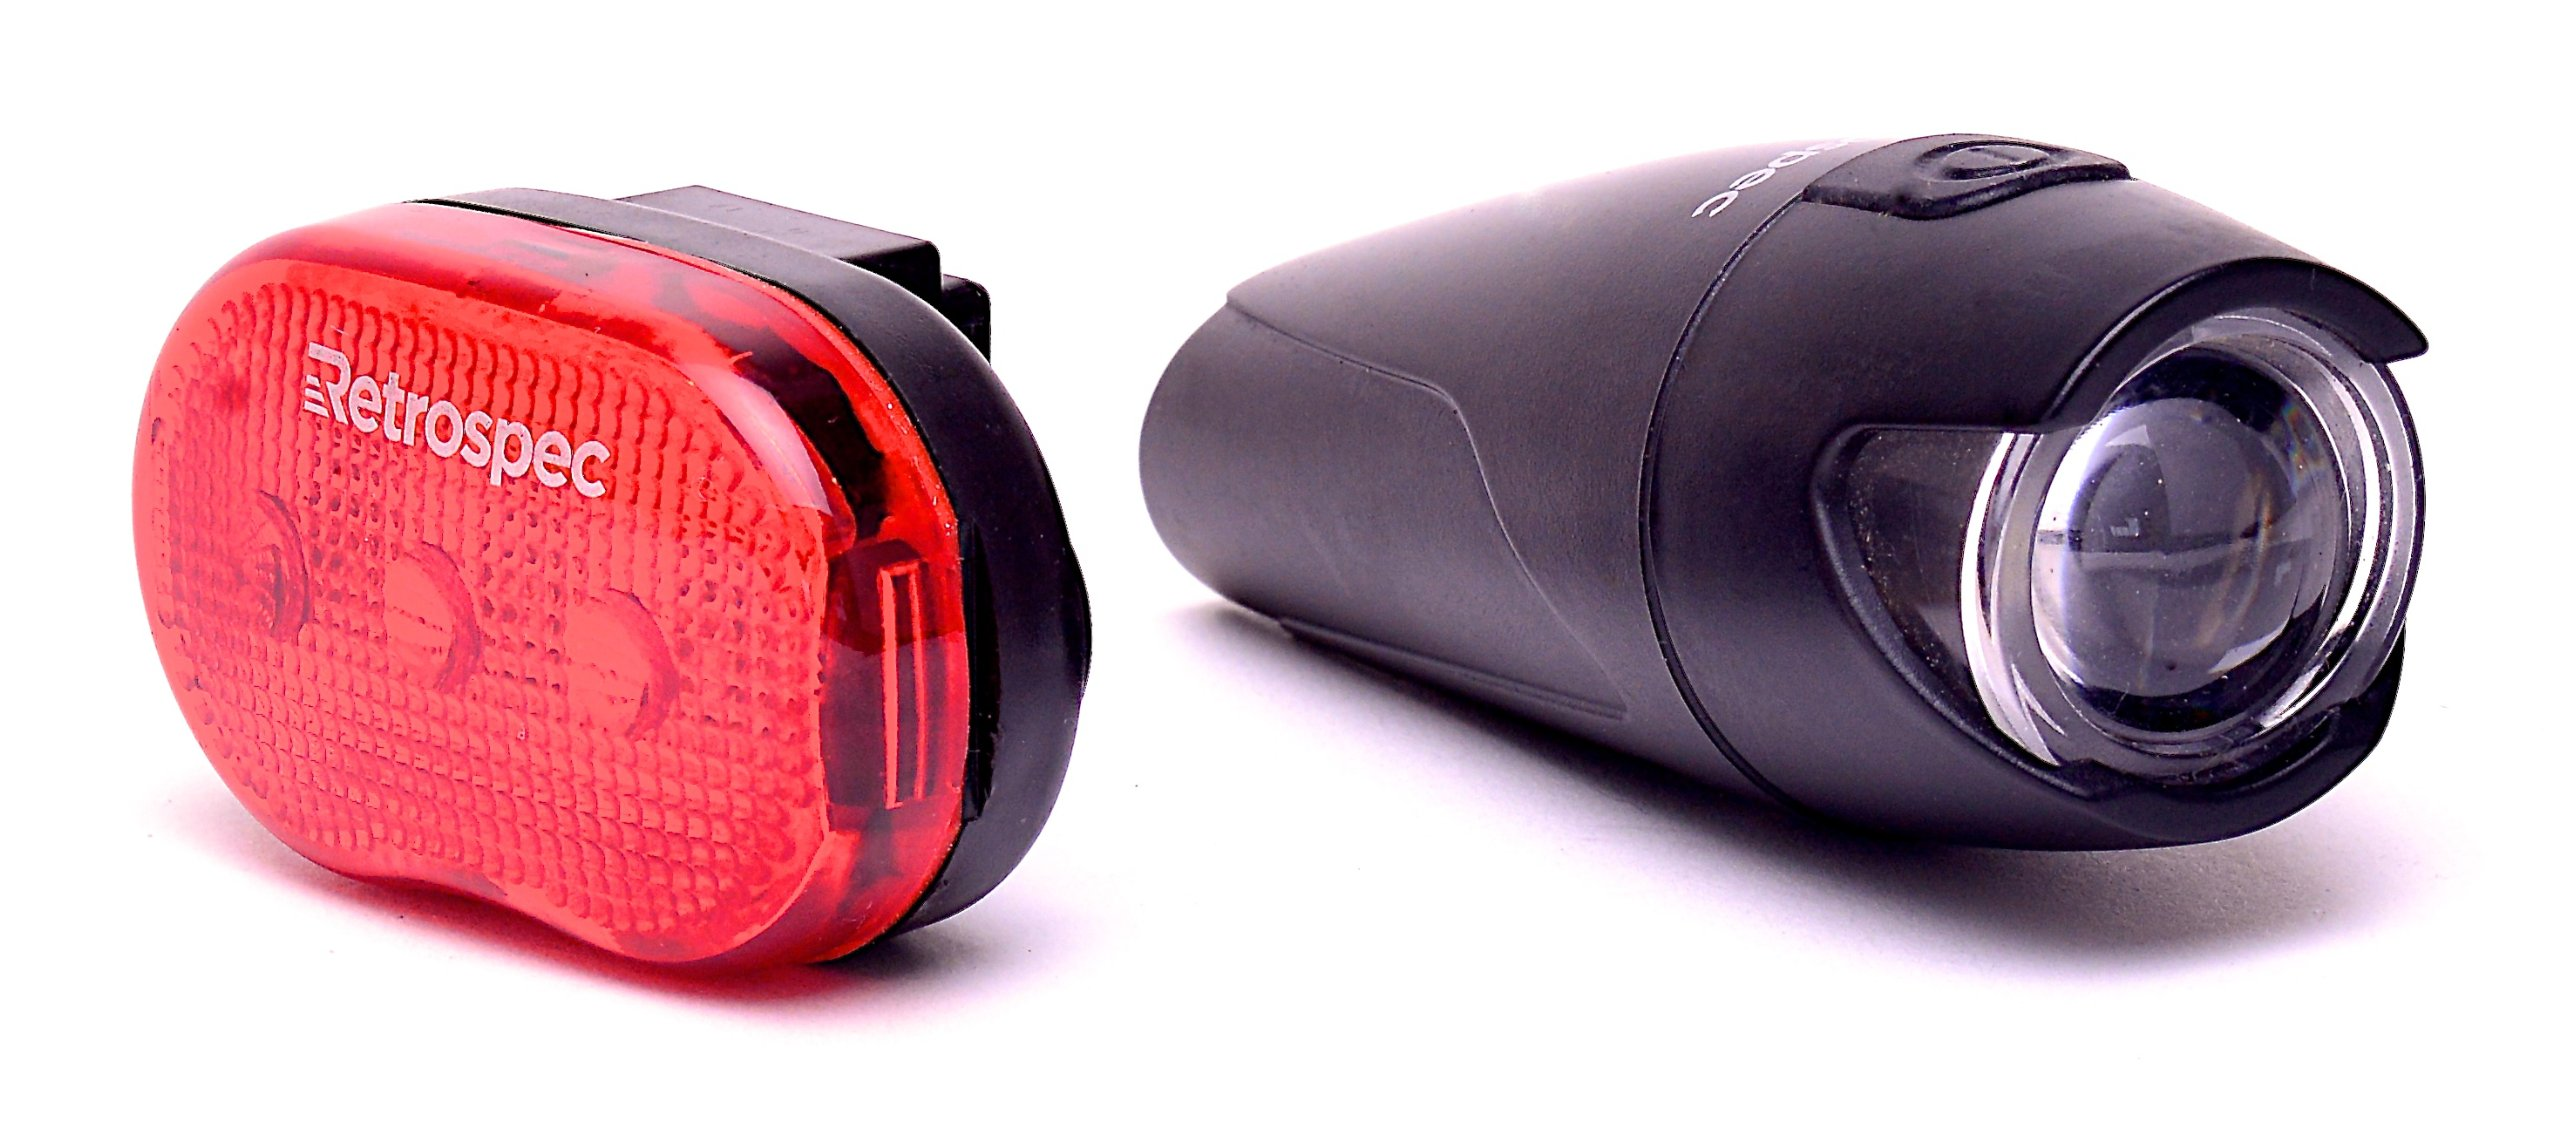 Retrospec Bicycles Authentic Nichia Extreme LED Headlight and Venice-3 LED Taillight with Articulating Mount Headlight and Taillight Combo